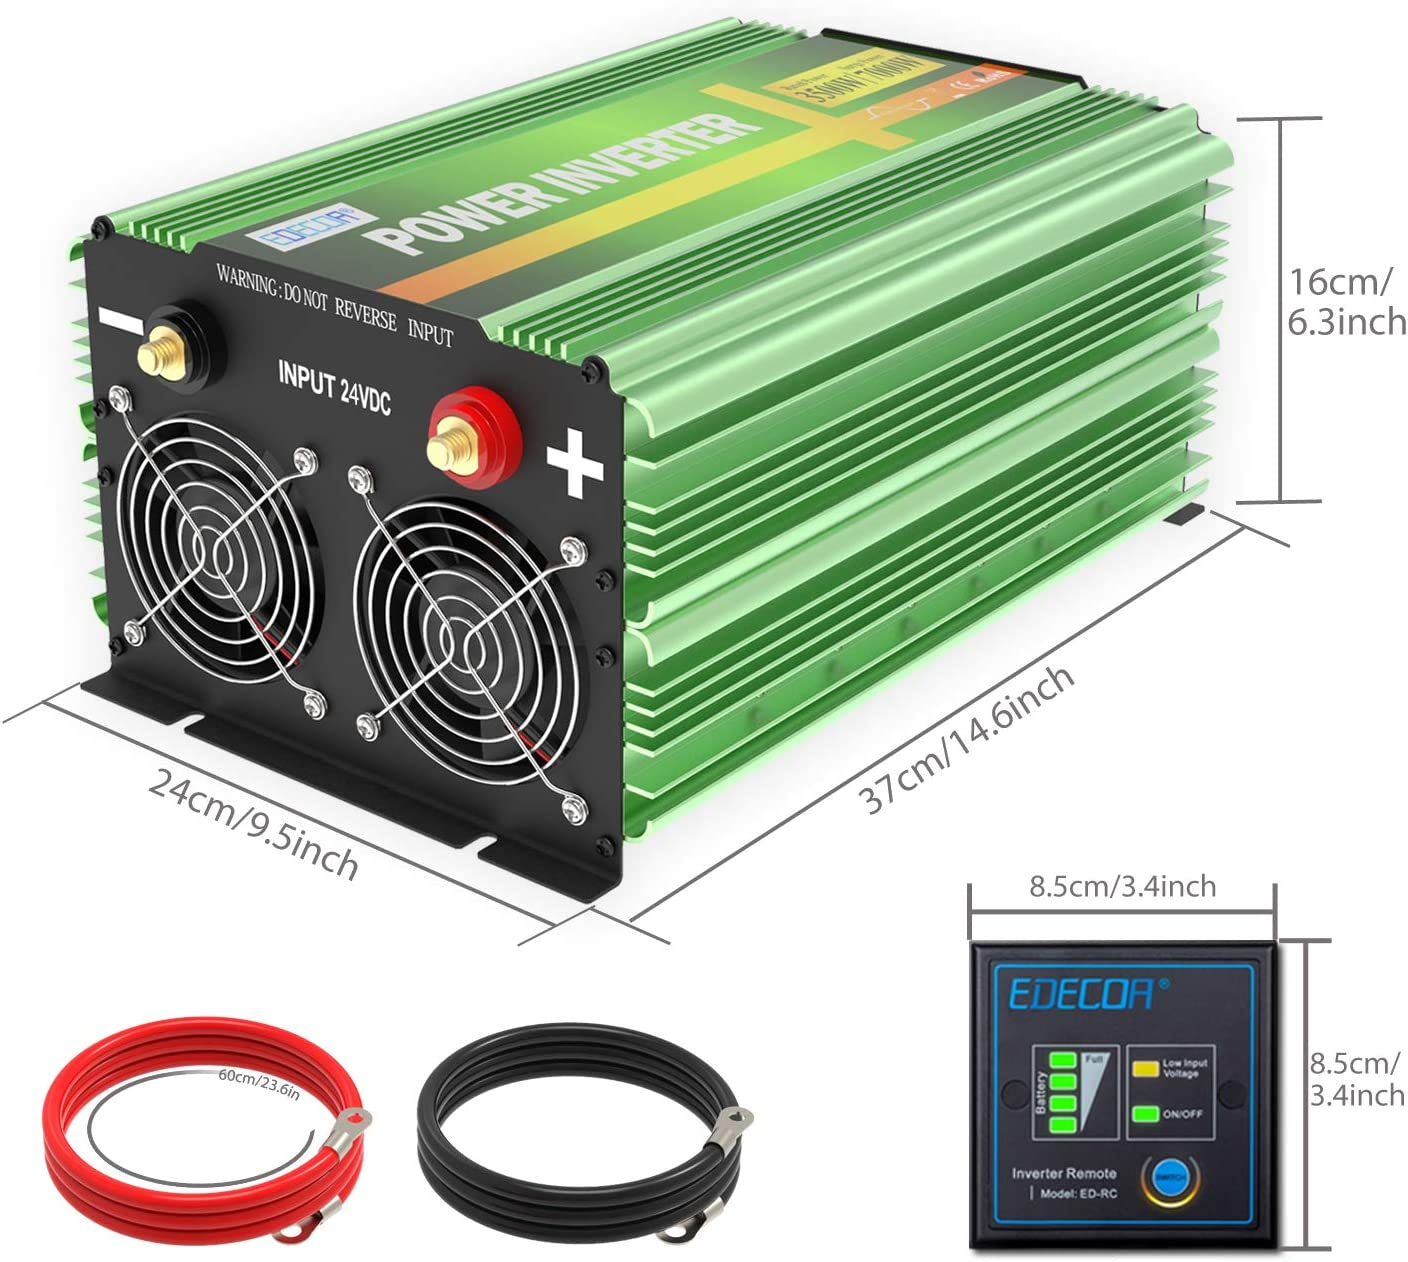 EDECOA Pure Sine Wave Power Inverter 3500W DC 24V to AC 110V 120V 4 AC Outlets and 1 Hardwire Terminal with LCD Display and Remote Controller